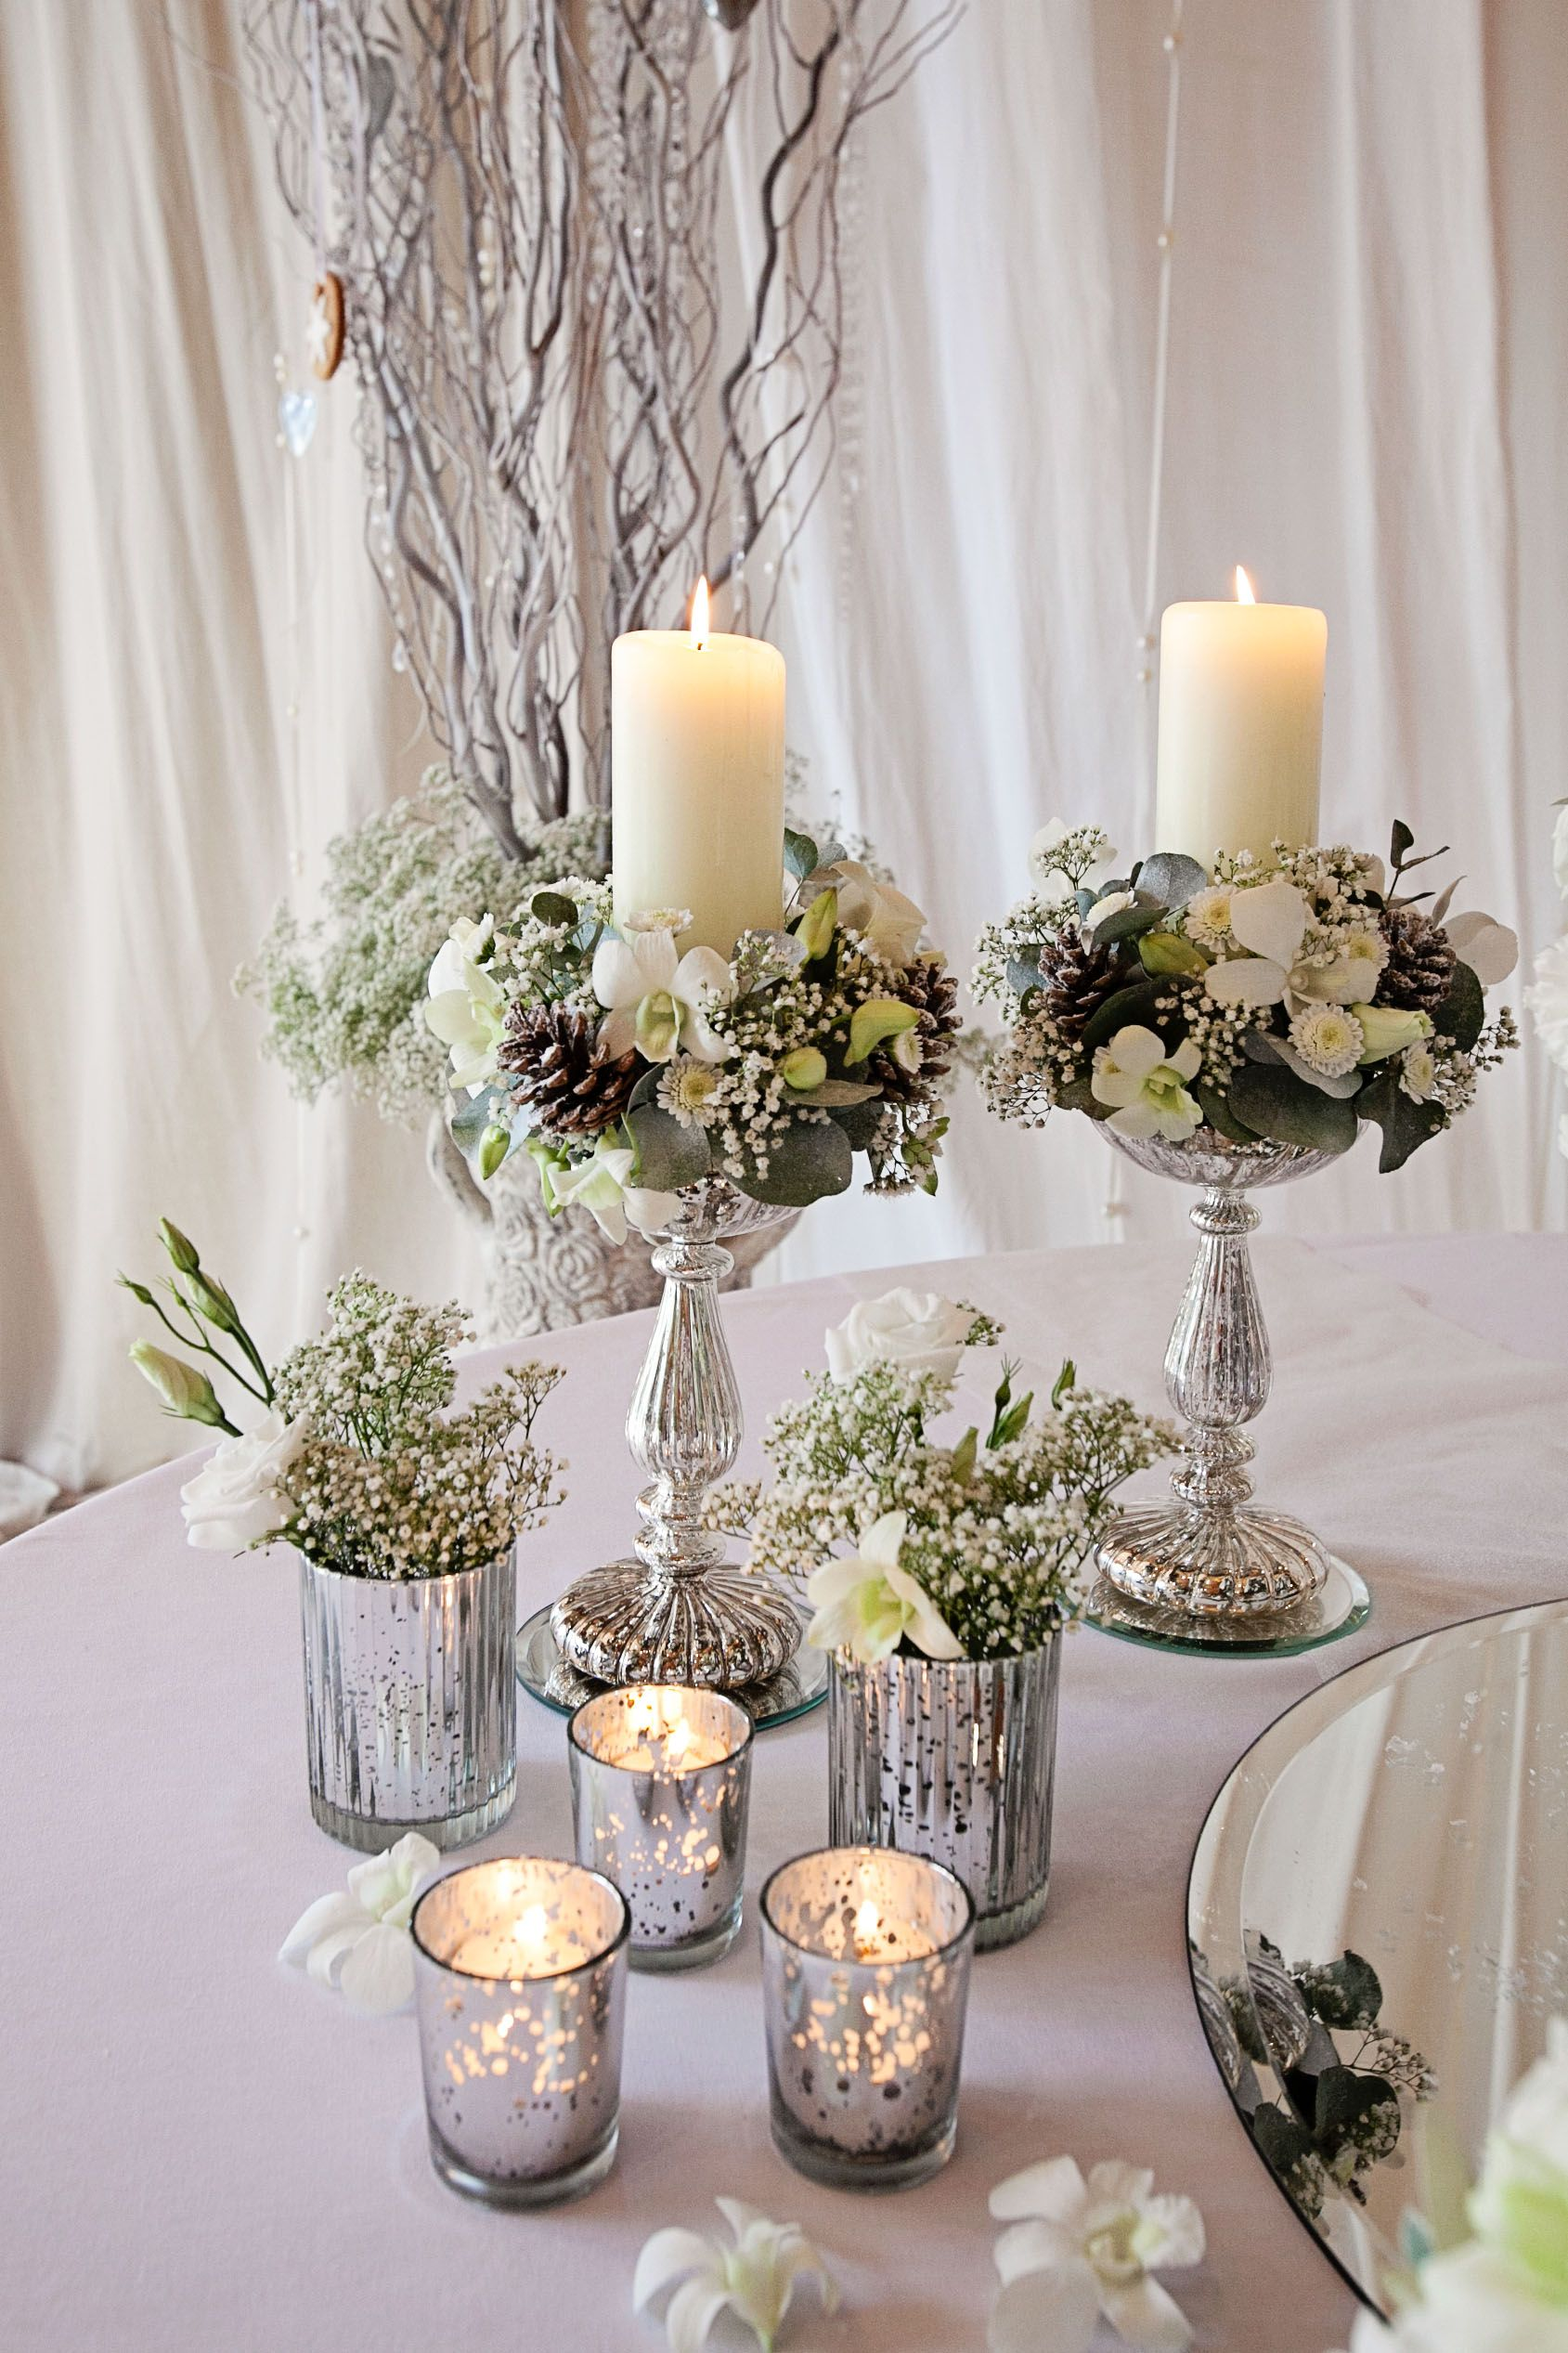 Tiara flower arrangements candle stand arrangements and for Idee deco vase